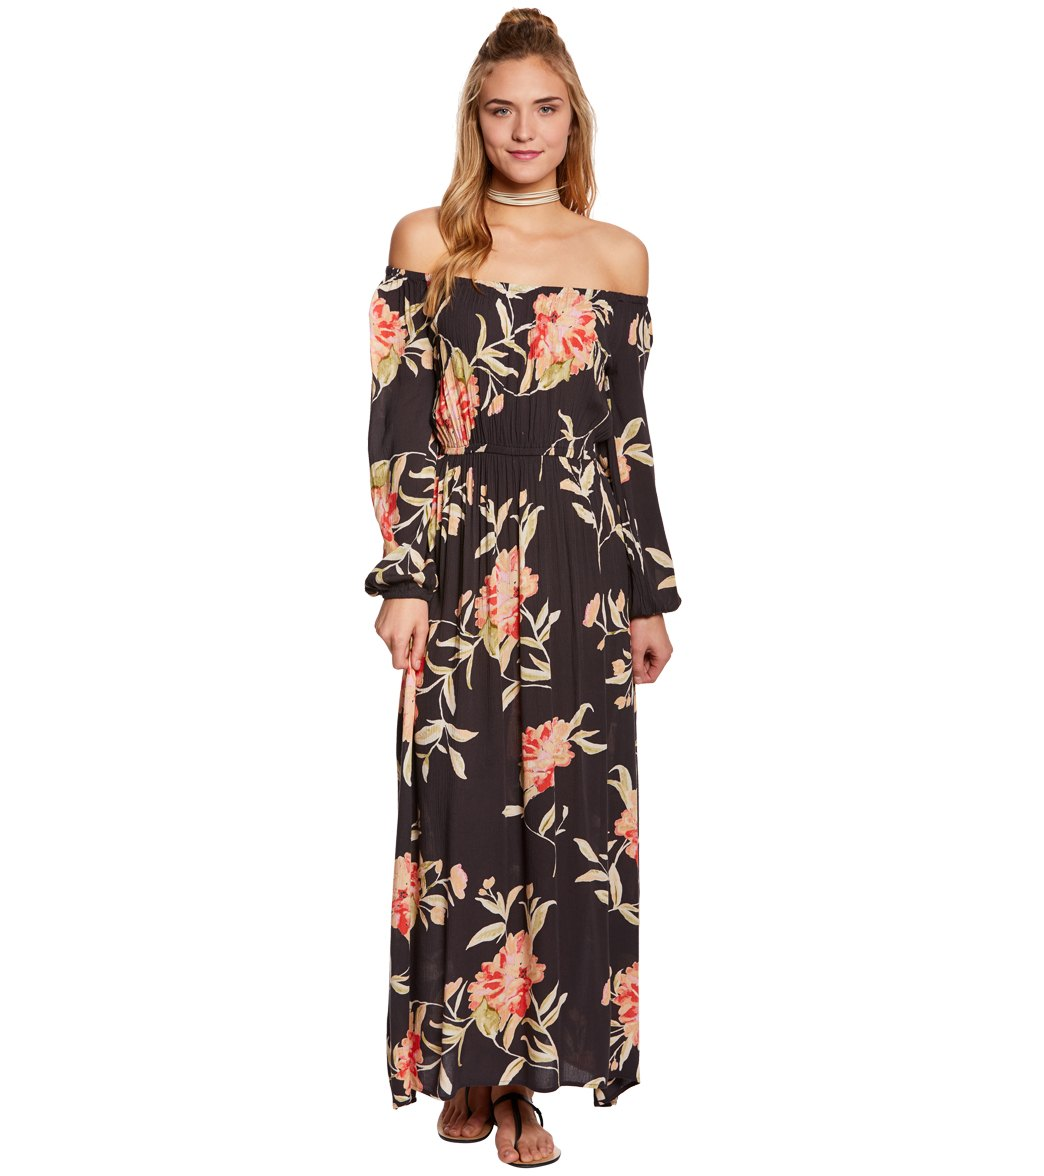 e246dbd012d Billabong Crystal Ball Maxi Dress at SwimOutlet.com - Free Shipping